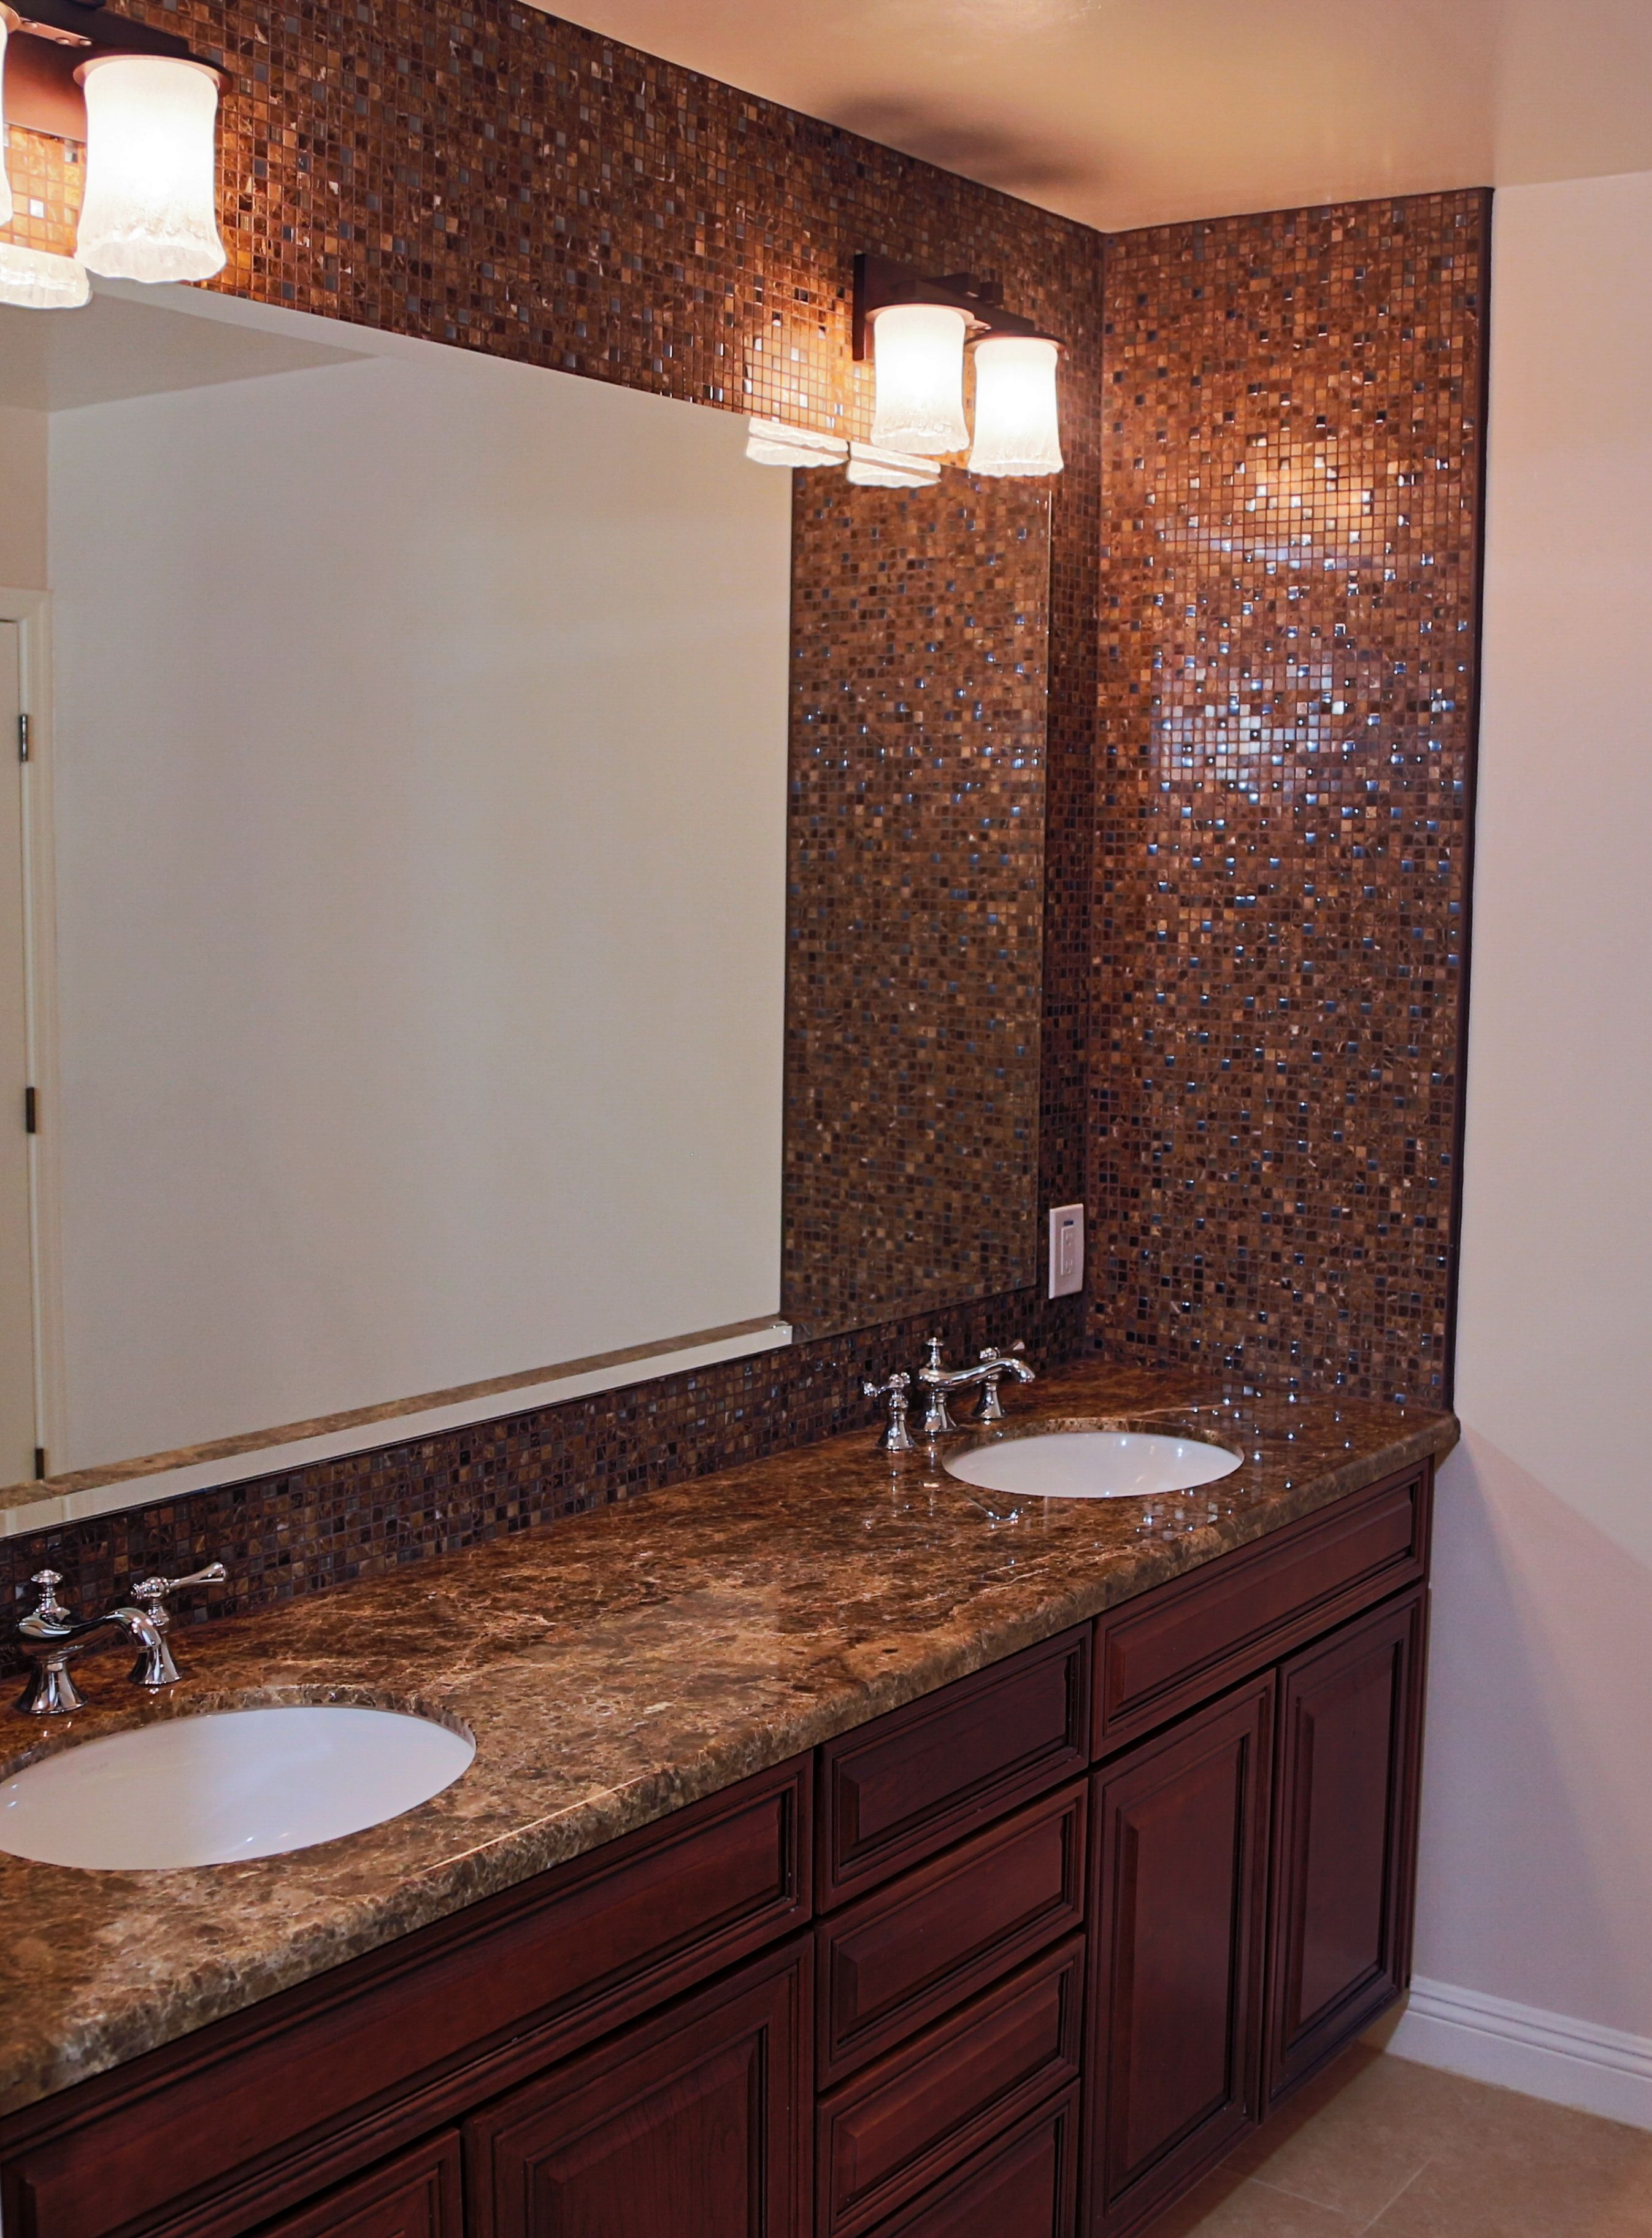 No Matter Your Style The Twd Design Showroom Has Material Selections You Will Love Visit Us Today In Peoria Az Tw Bathrooms Remodel Remodel Dream Bathrooms [ 3648 x 2693 Pixel ]